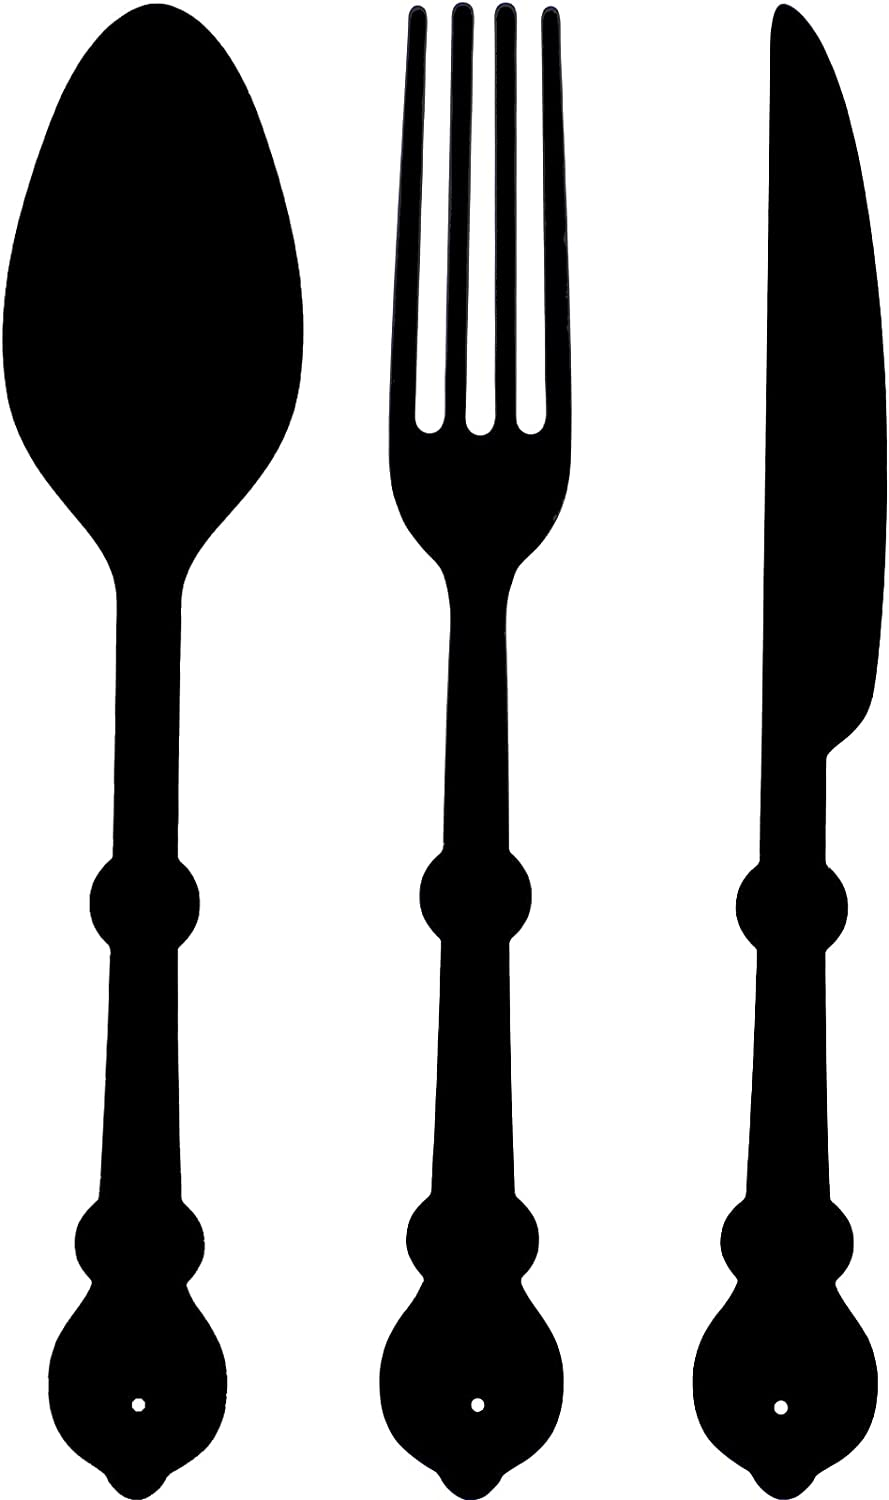 Hotop Fork Knife Spoon Set Wall Decor Rustic Metal Kitchen Utensils Wall Art Sign Wall Hanging Metal Sign Farmhouse Metal Wall Plaque Decorative Wall Hanging Sign for Home Dining Living Room (Black)